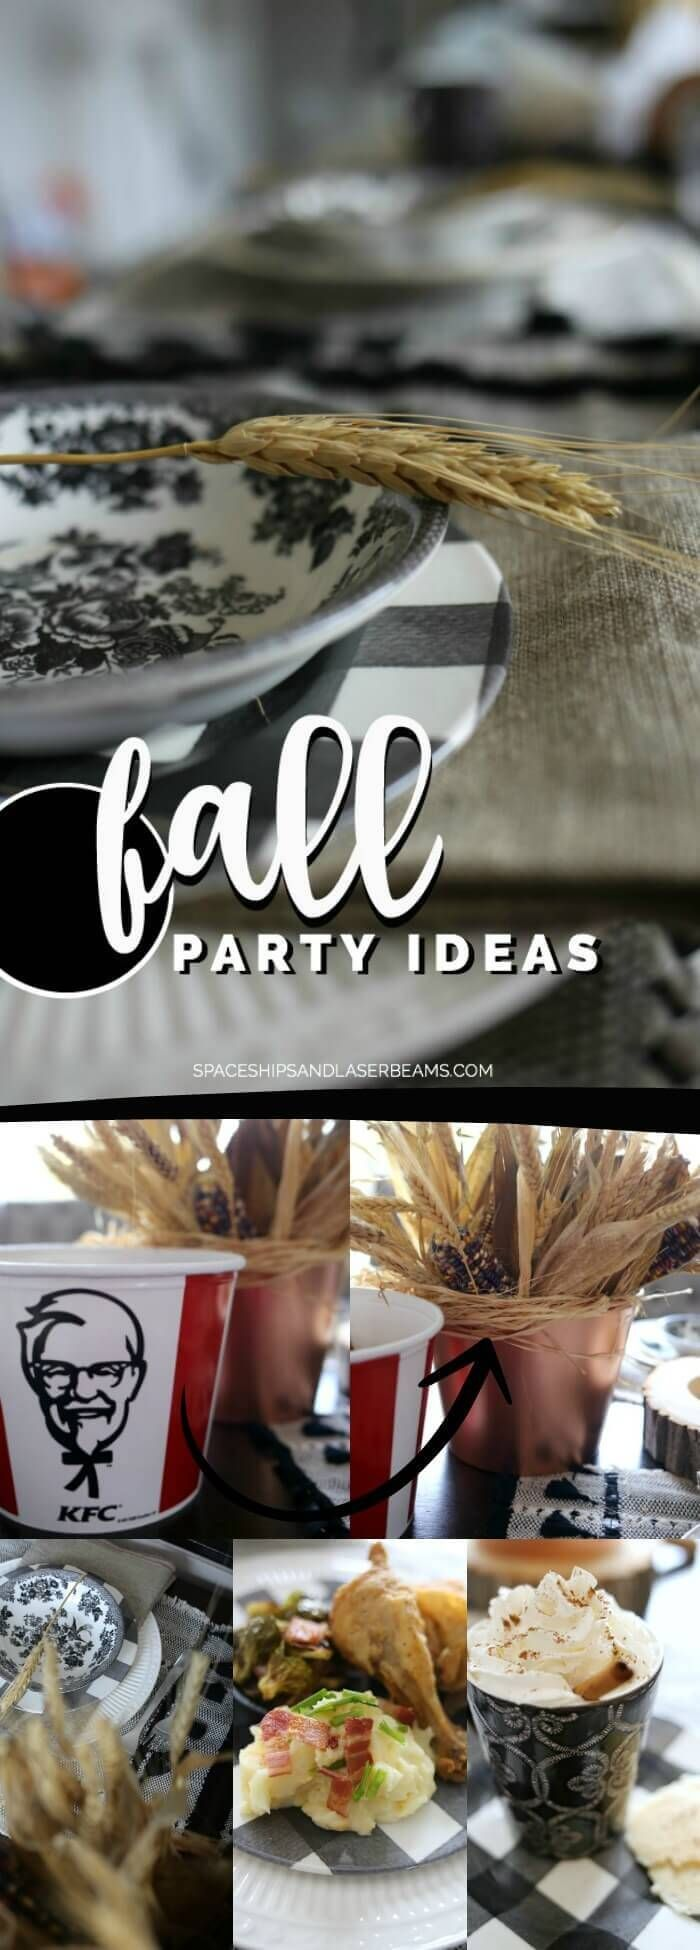 Fall Diner Party Ideas, Tons Of Fun For The Whole Family!